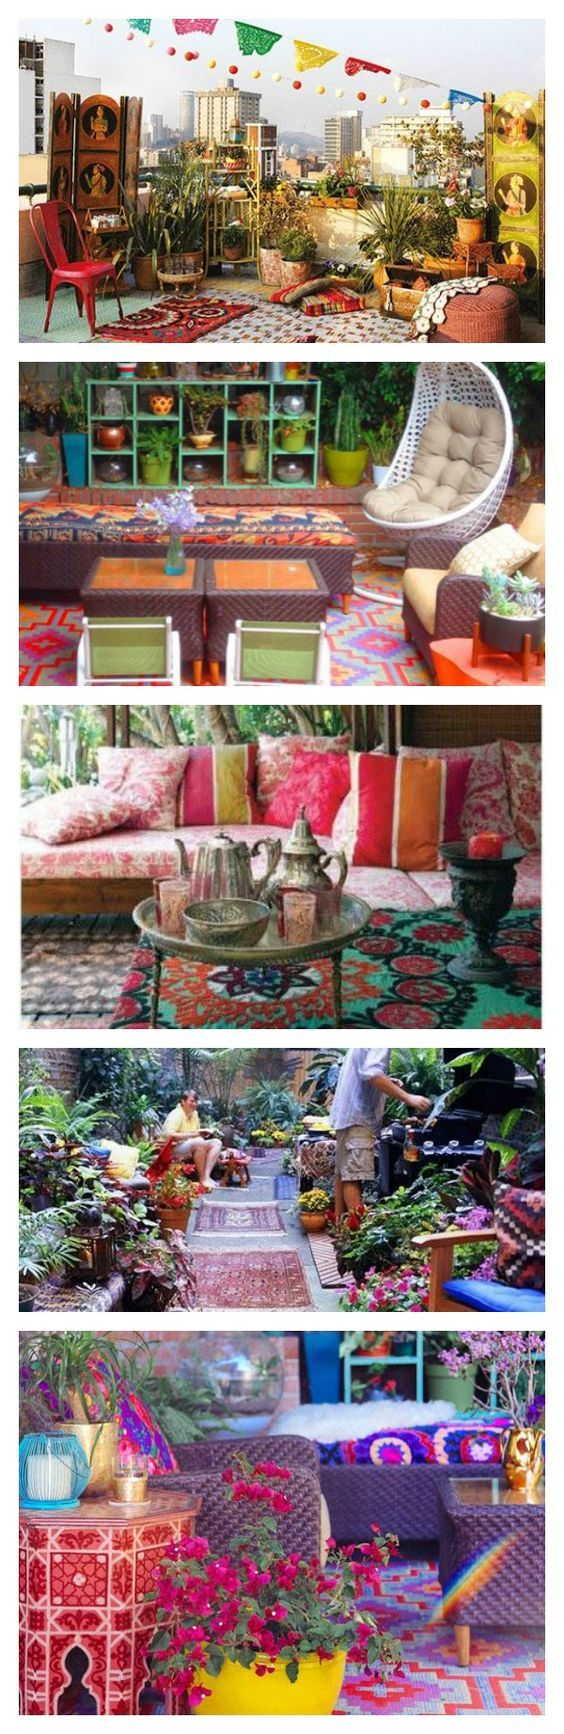 Colorful Bohemian Outdoor Spaces & How to Get the Look {bohemian backyards, porches and patios}